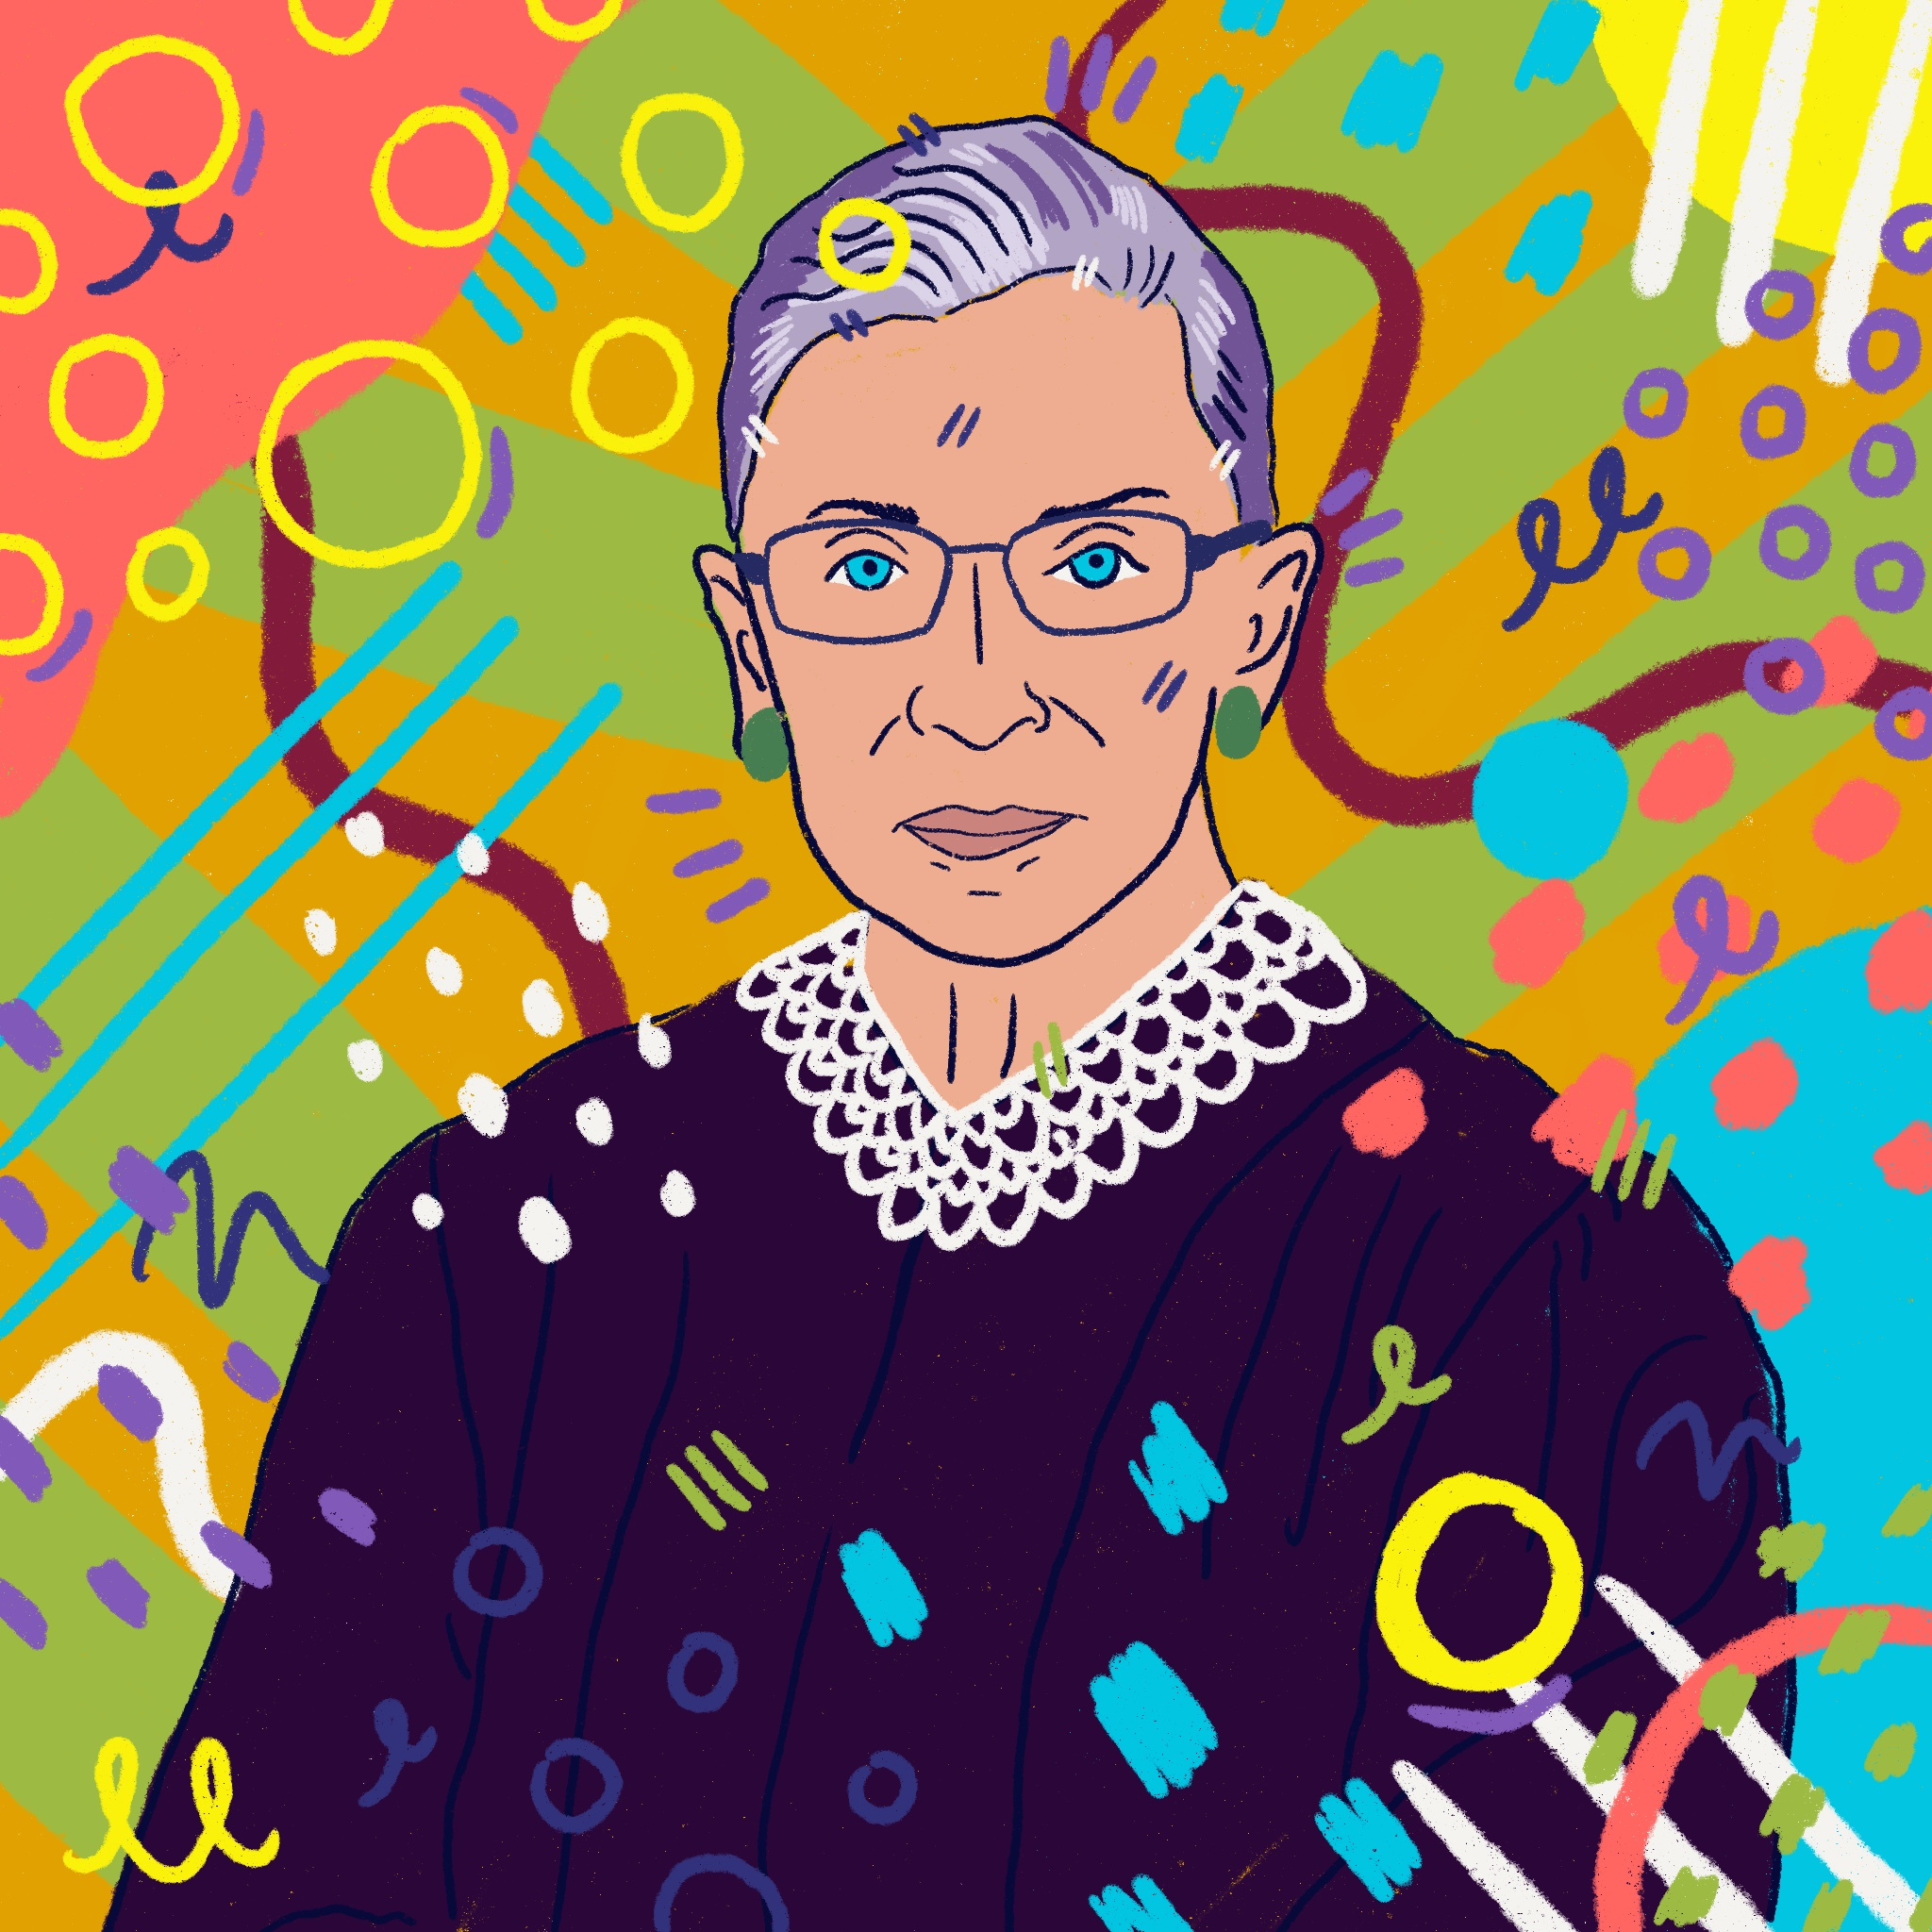 Commissioned portrait of Ruth Bader Ginsburg